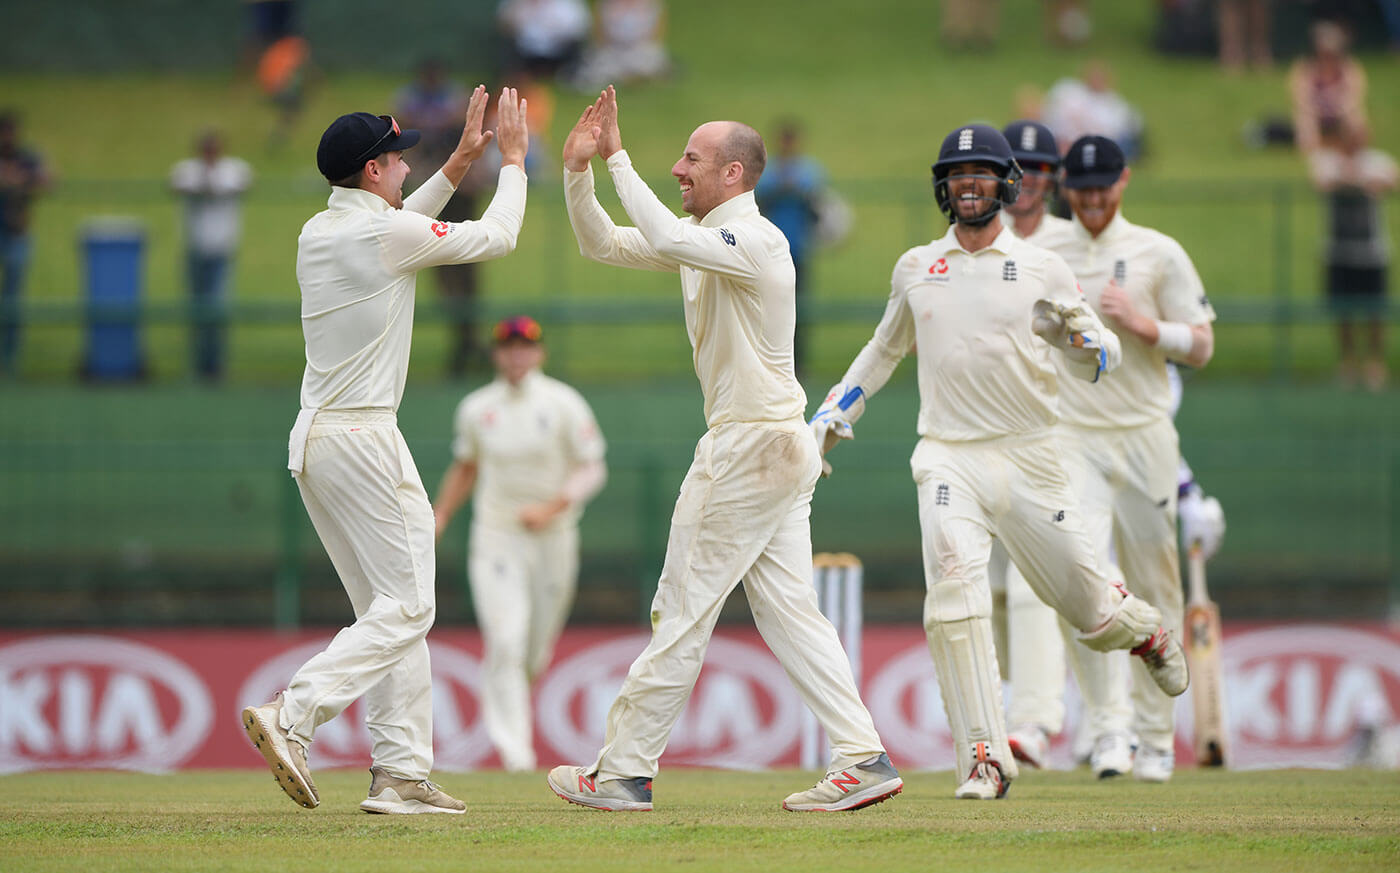 SL vs ENG 1st Test: England cruise to 127/2 after bundling out Sri Lanka for 135